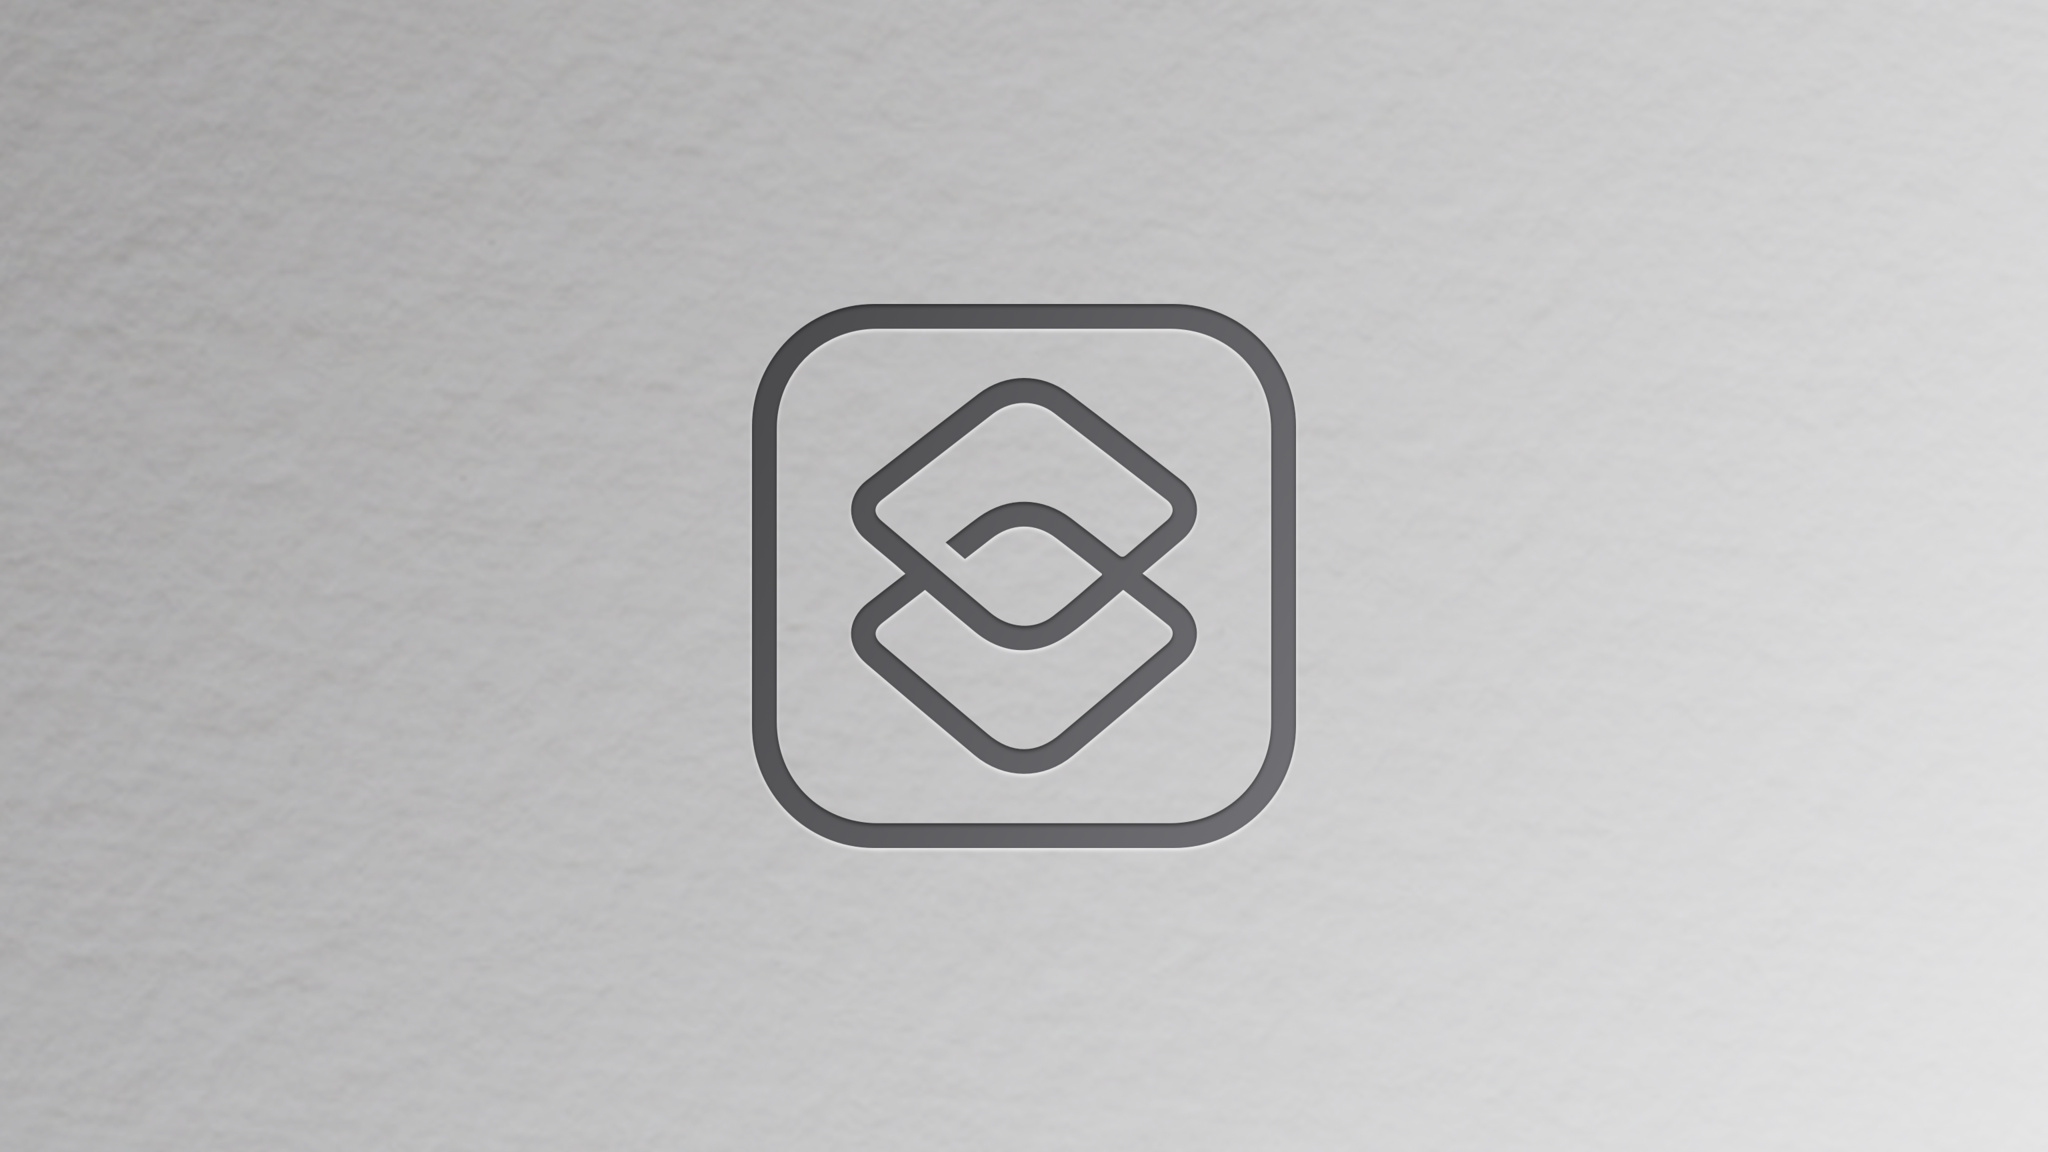 Shortcuts icon on a silver background